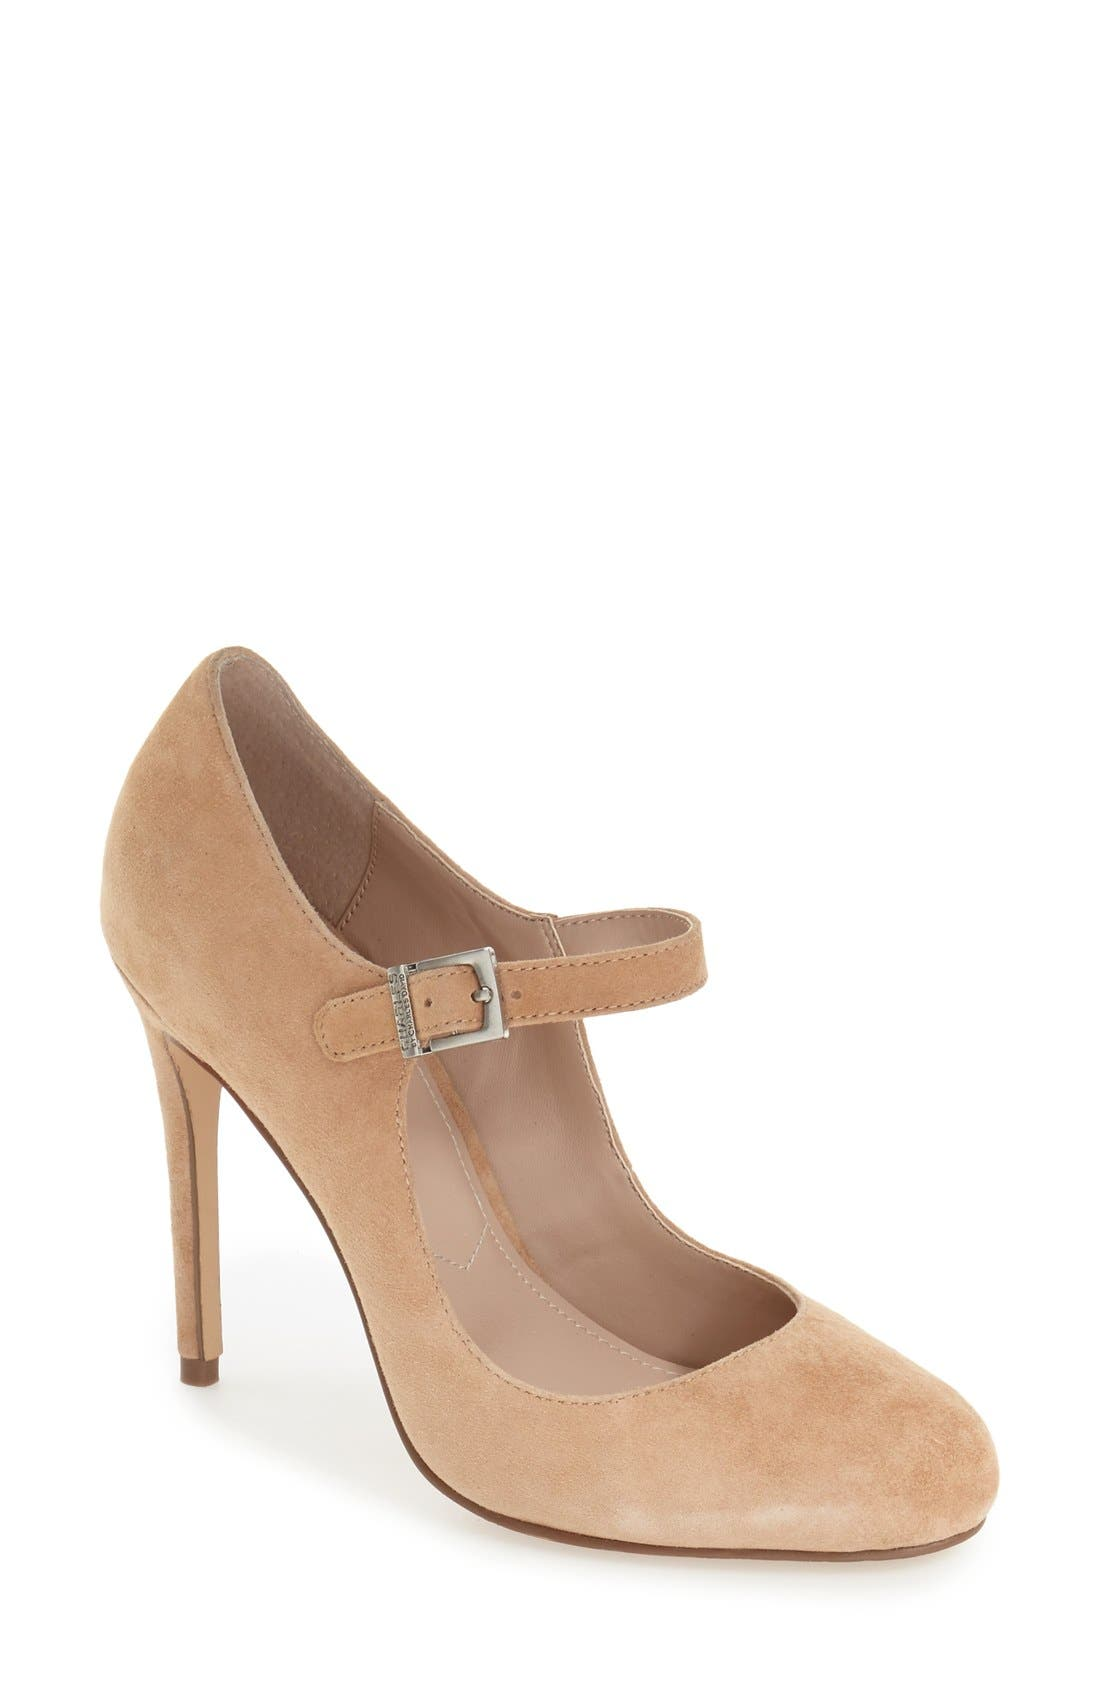 Alternate Image 1 Selected - Charles by Charles David 'Lava' Mary Jane Pump (Women)